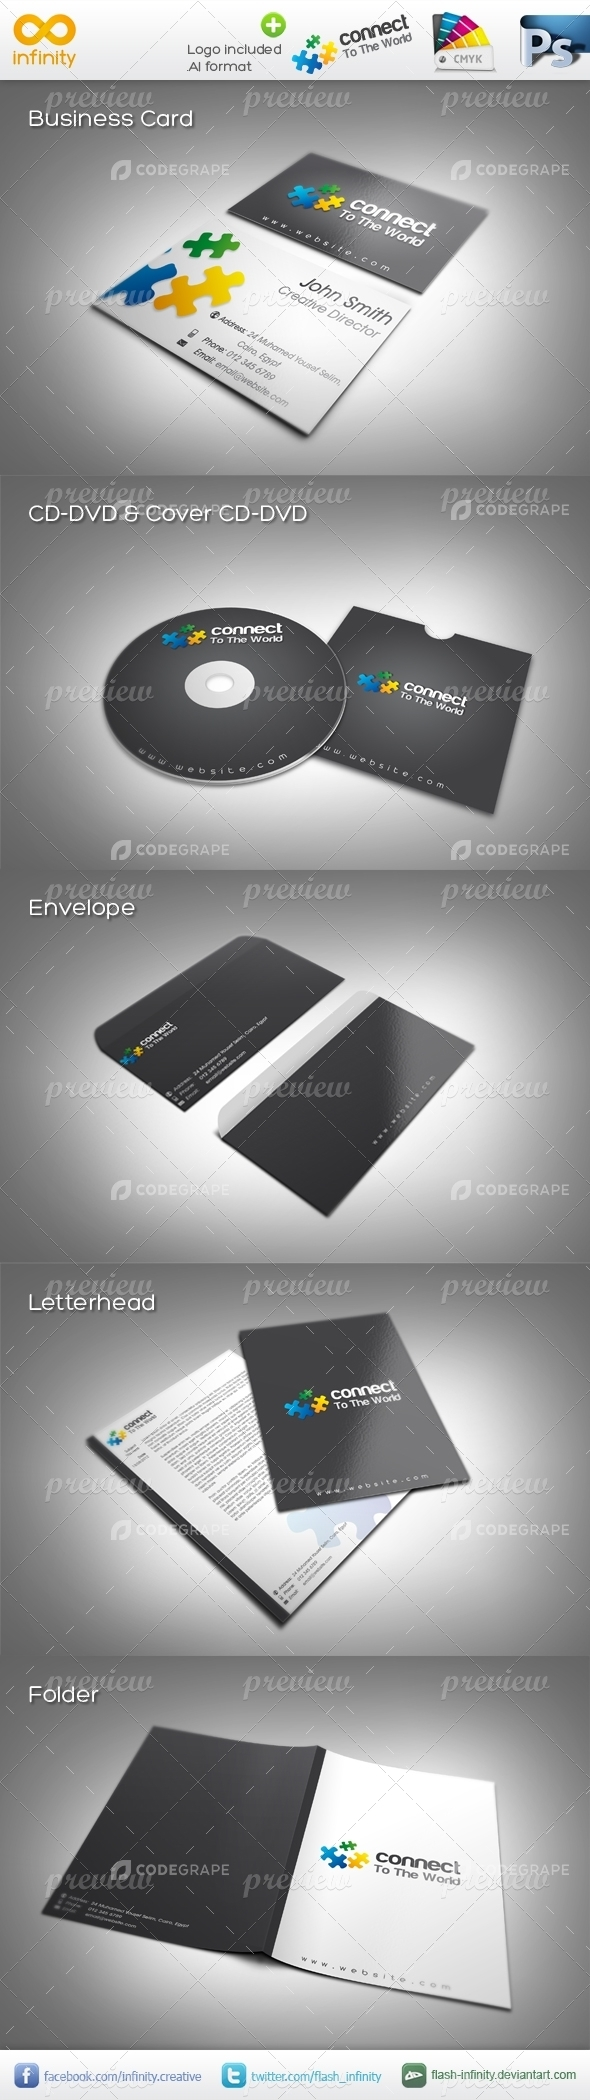 Connect Corporate Identity